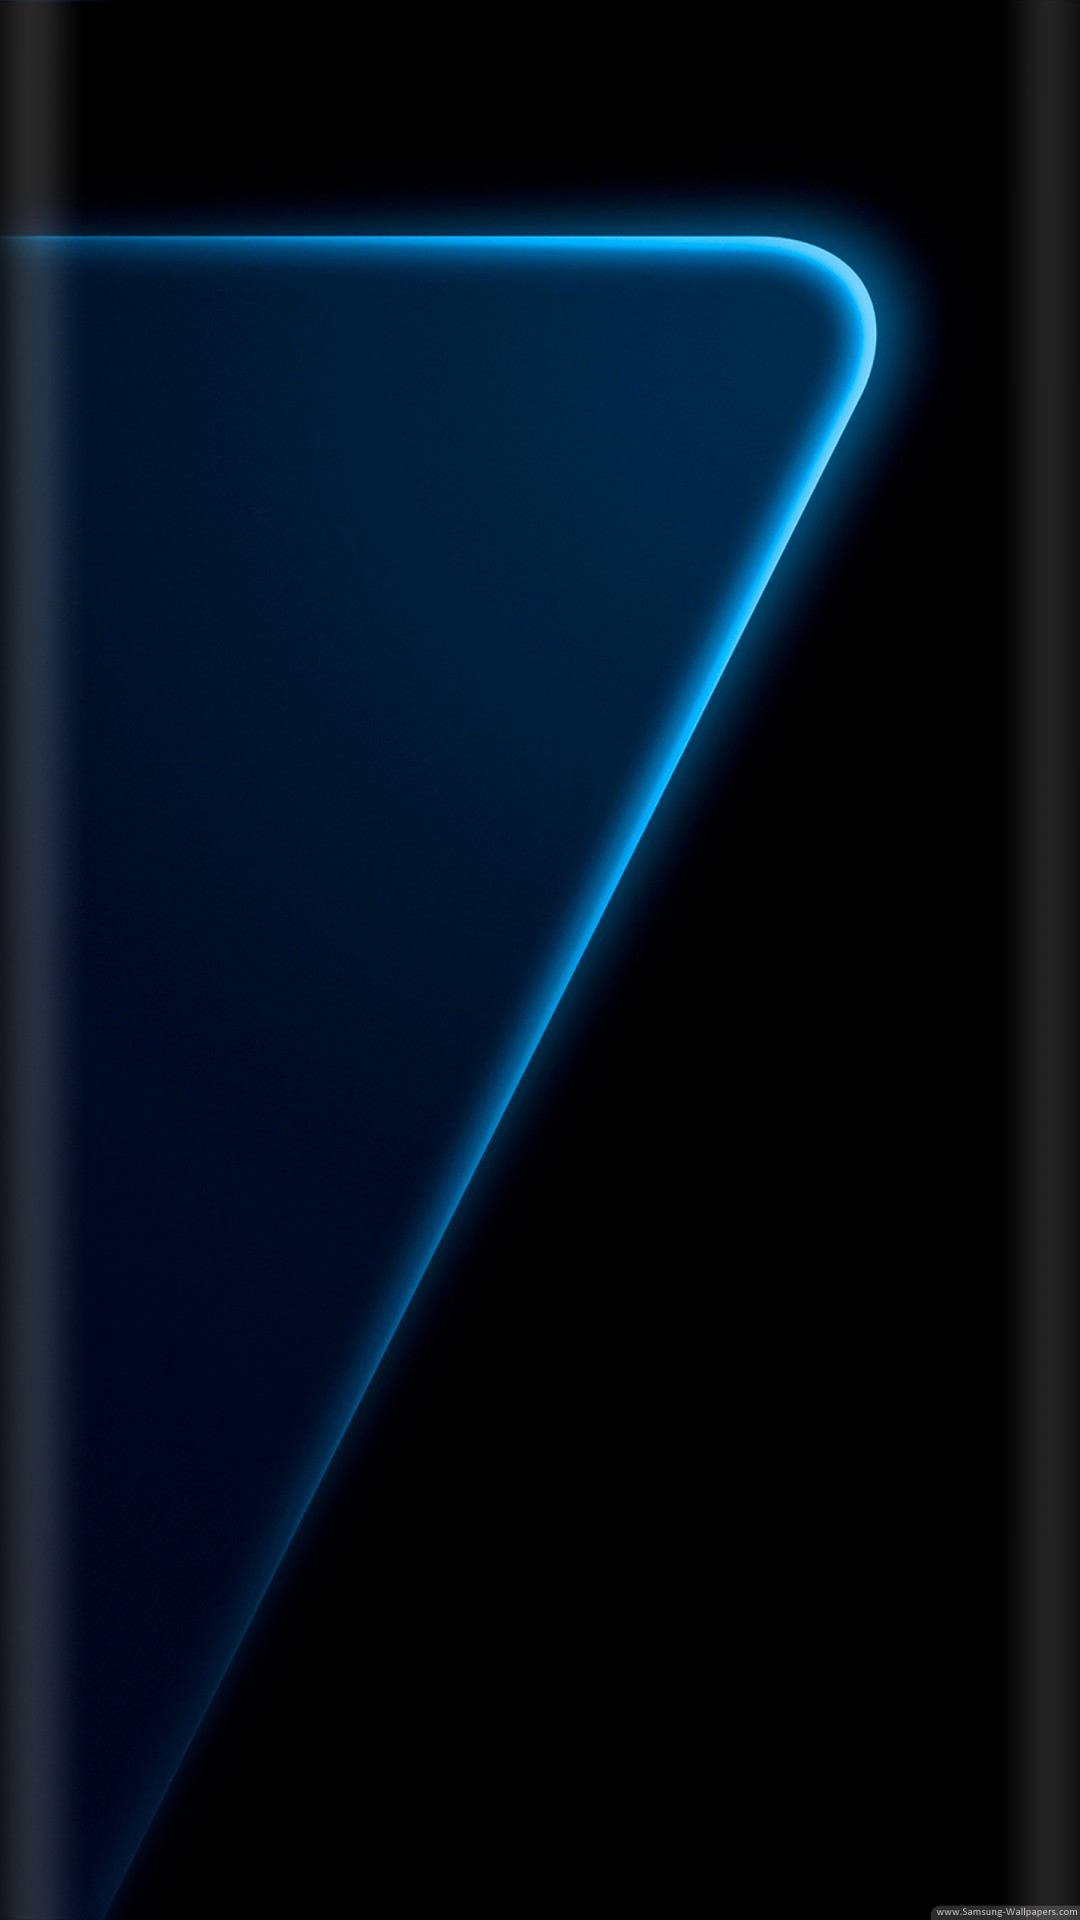 46 Samsung Wallpaper On Wallpapersafari